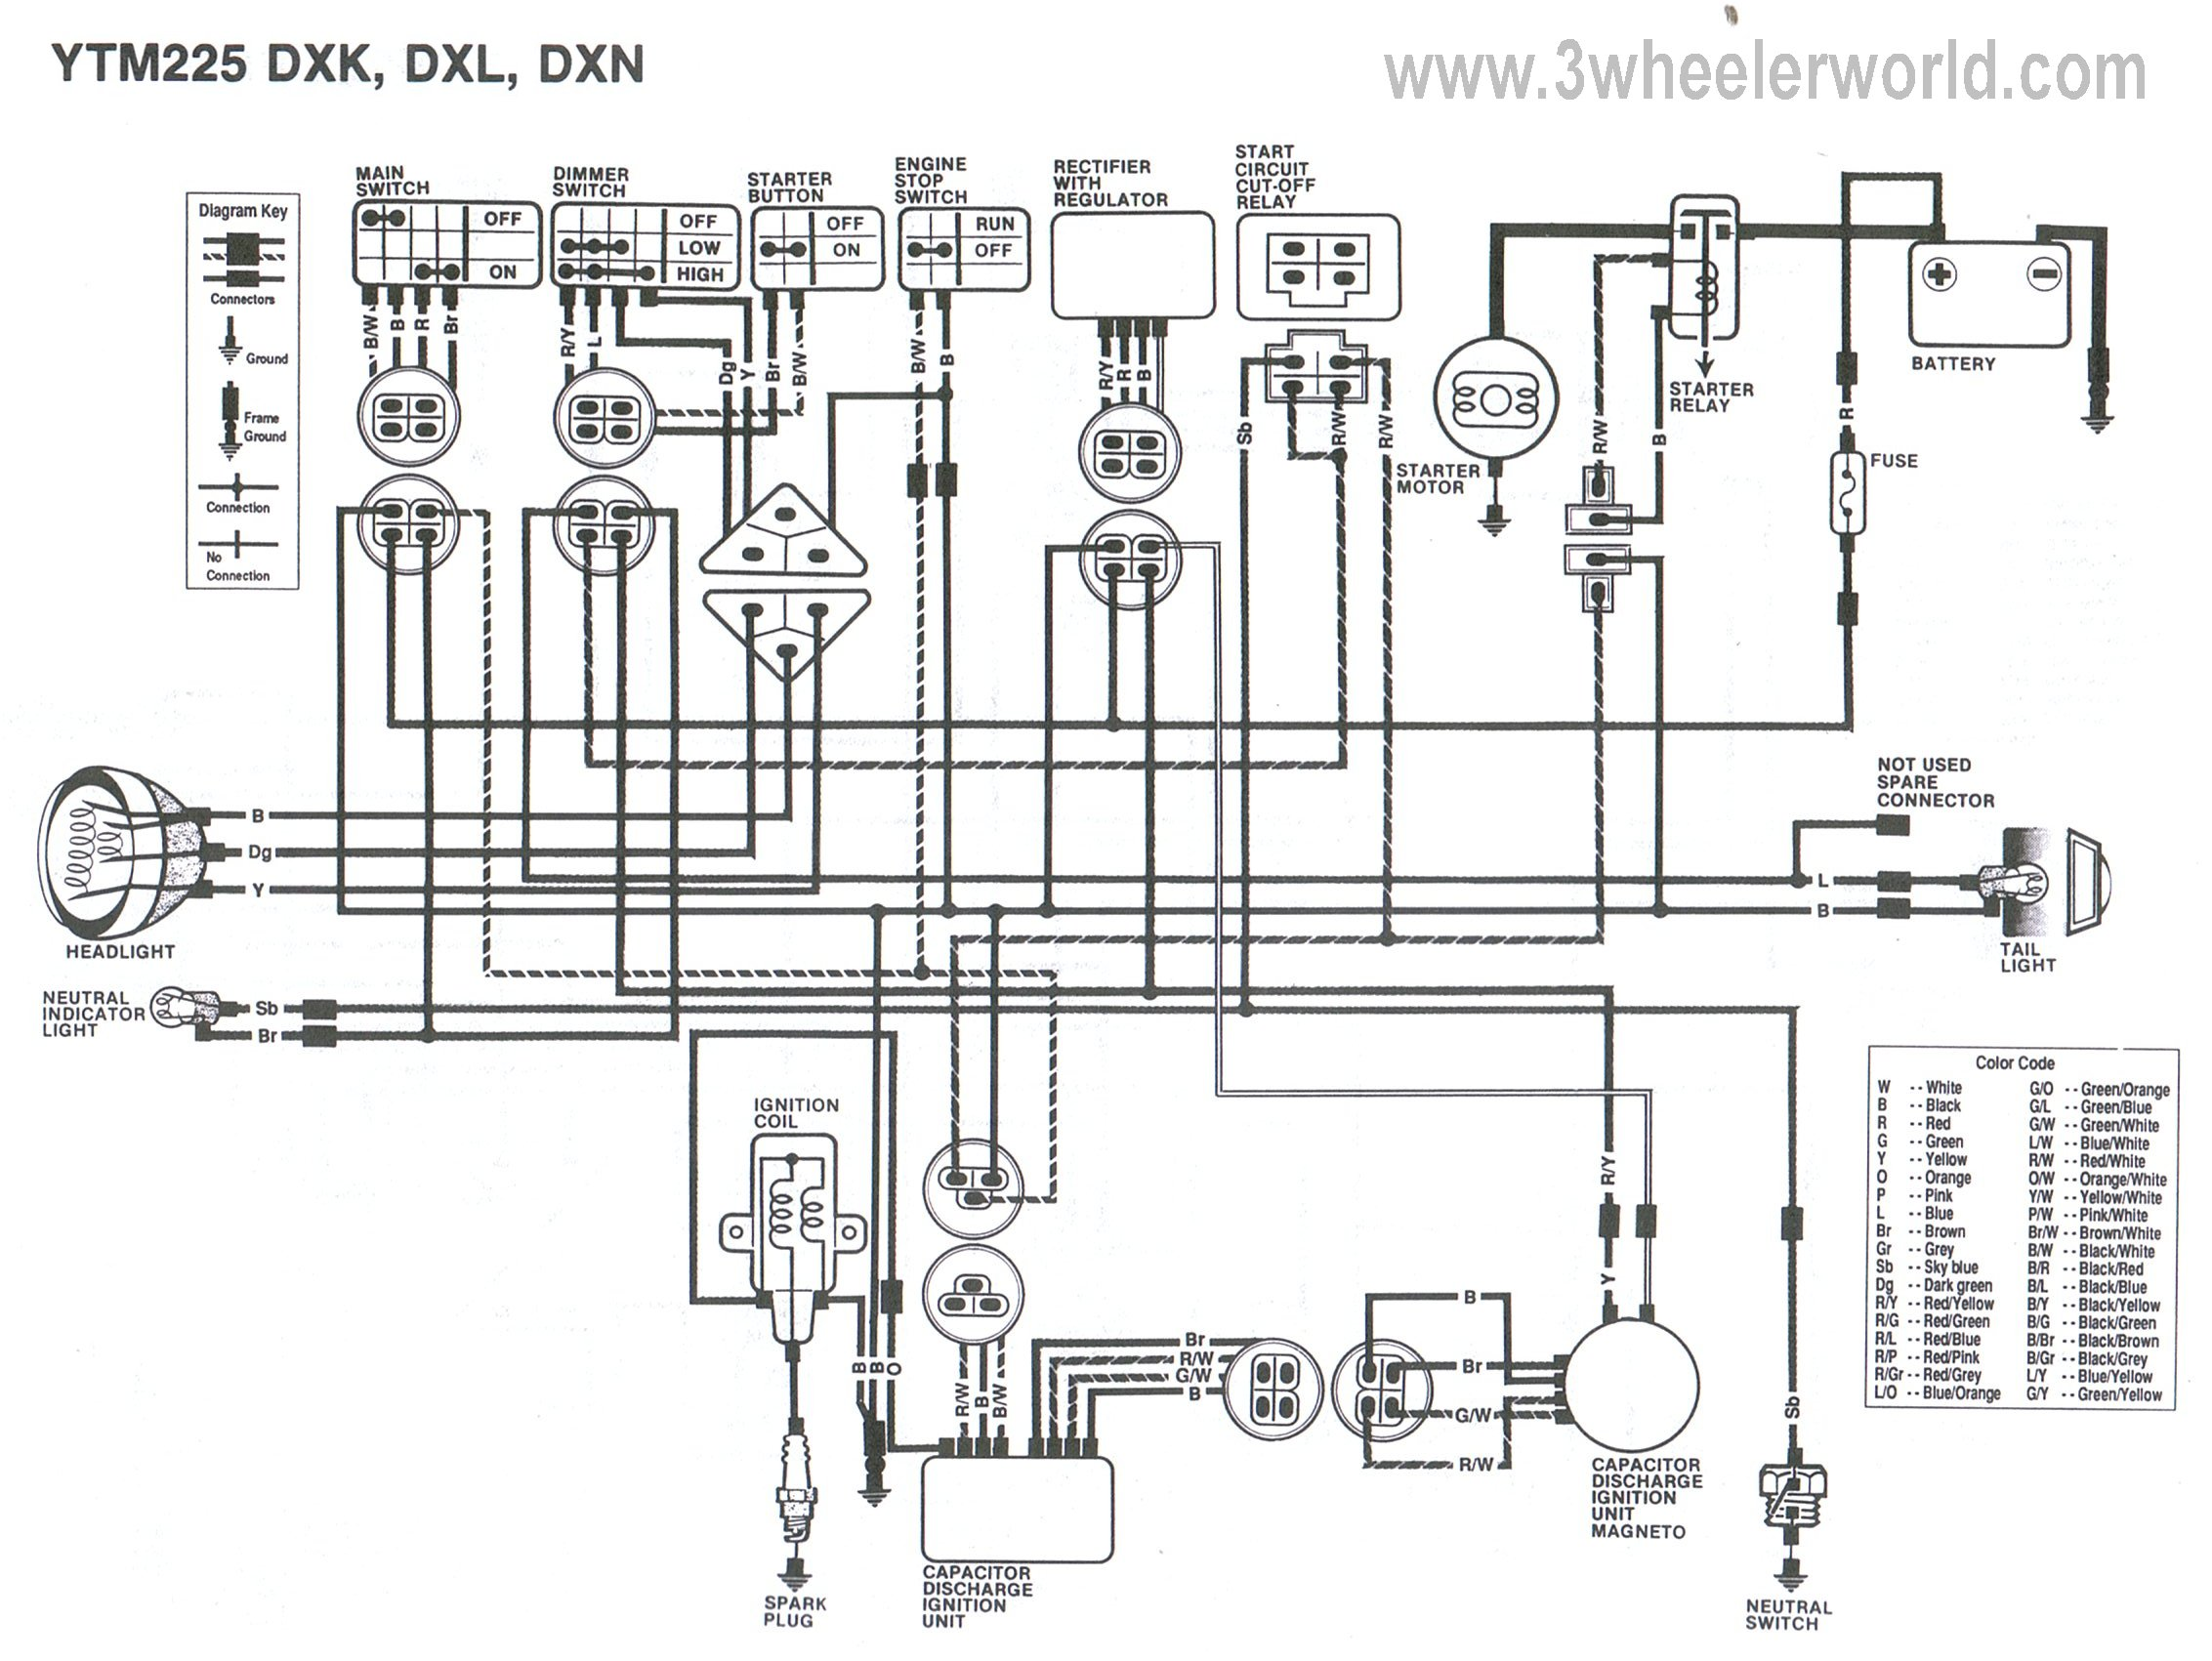 YTM225DXKDXLDXN 3 wheeler world tech help yamaha wiring diagrams yamaha moto 4 250 wiring diagrams at alyssarenee.co